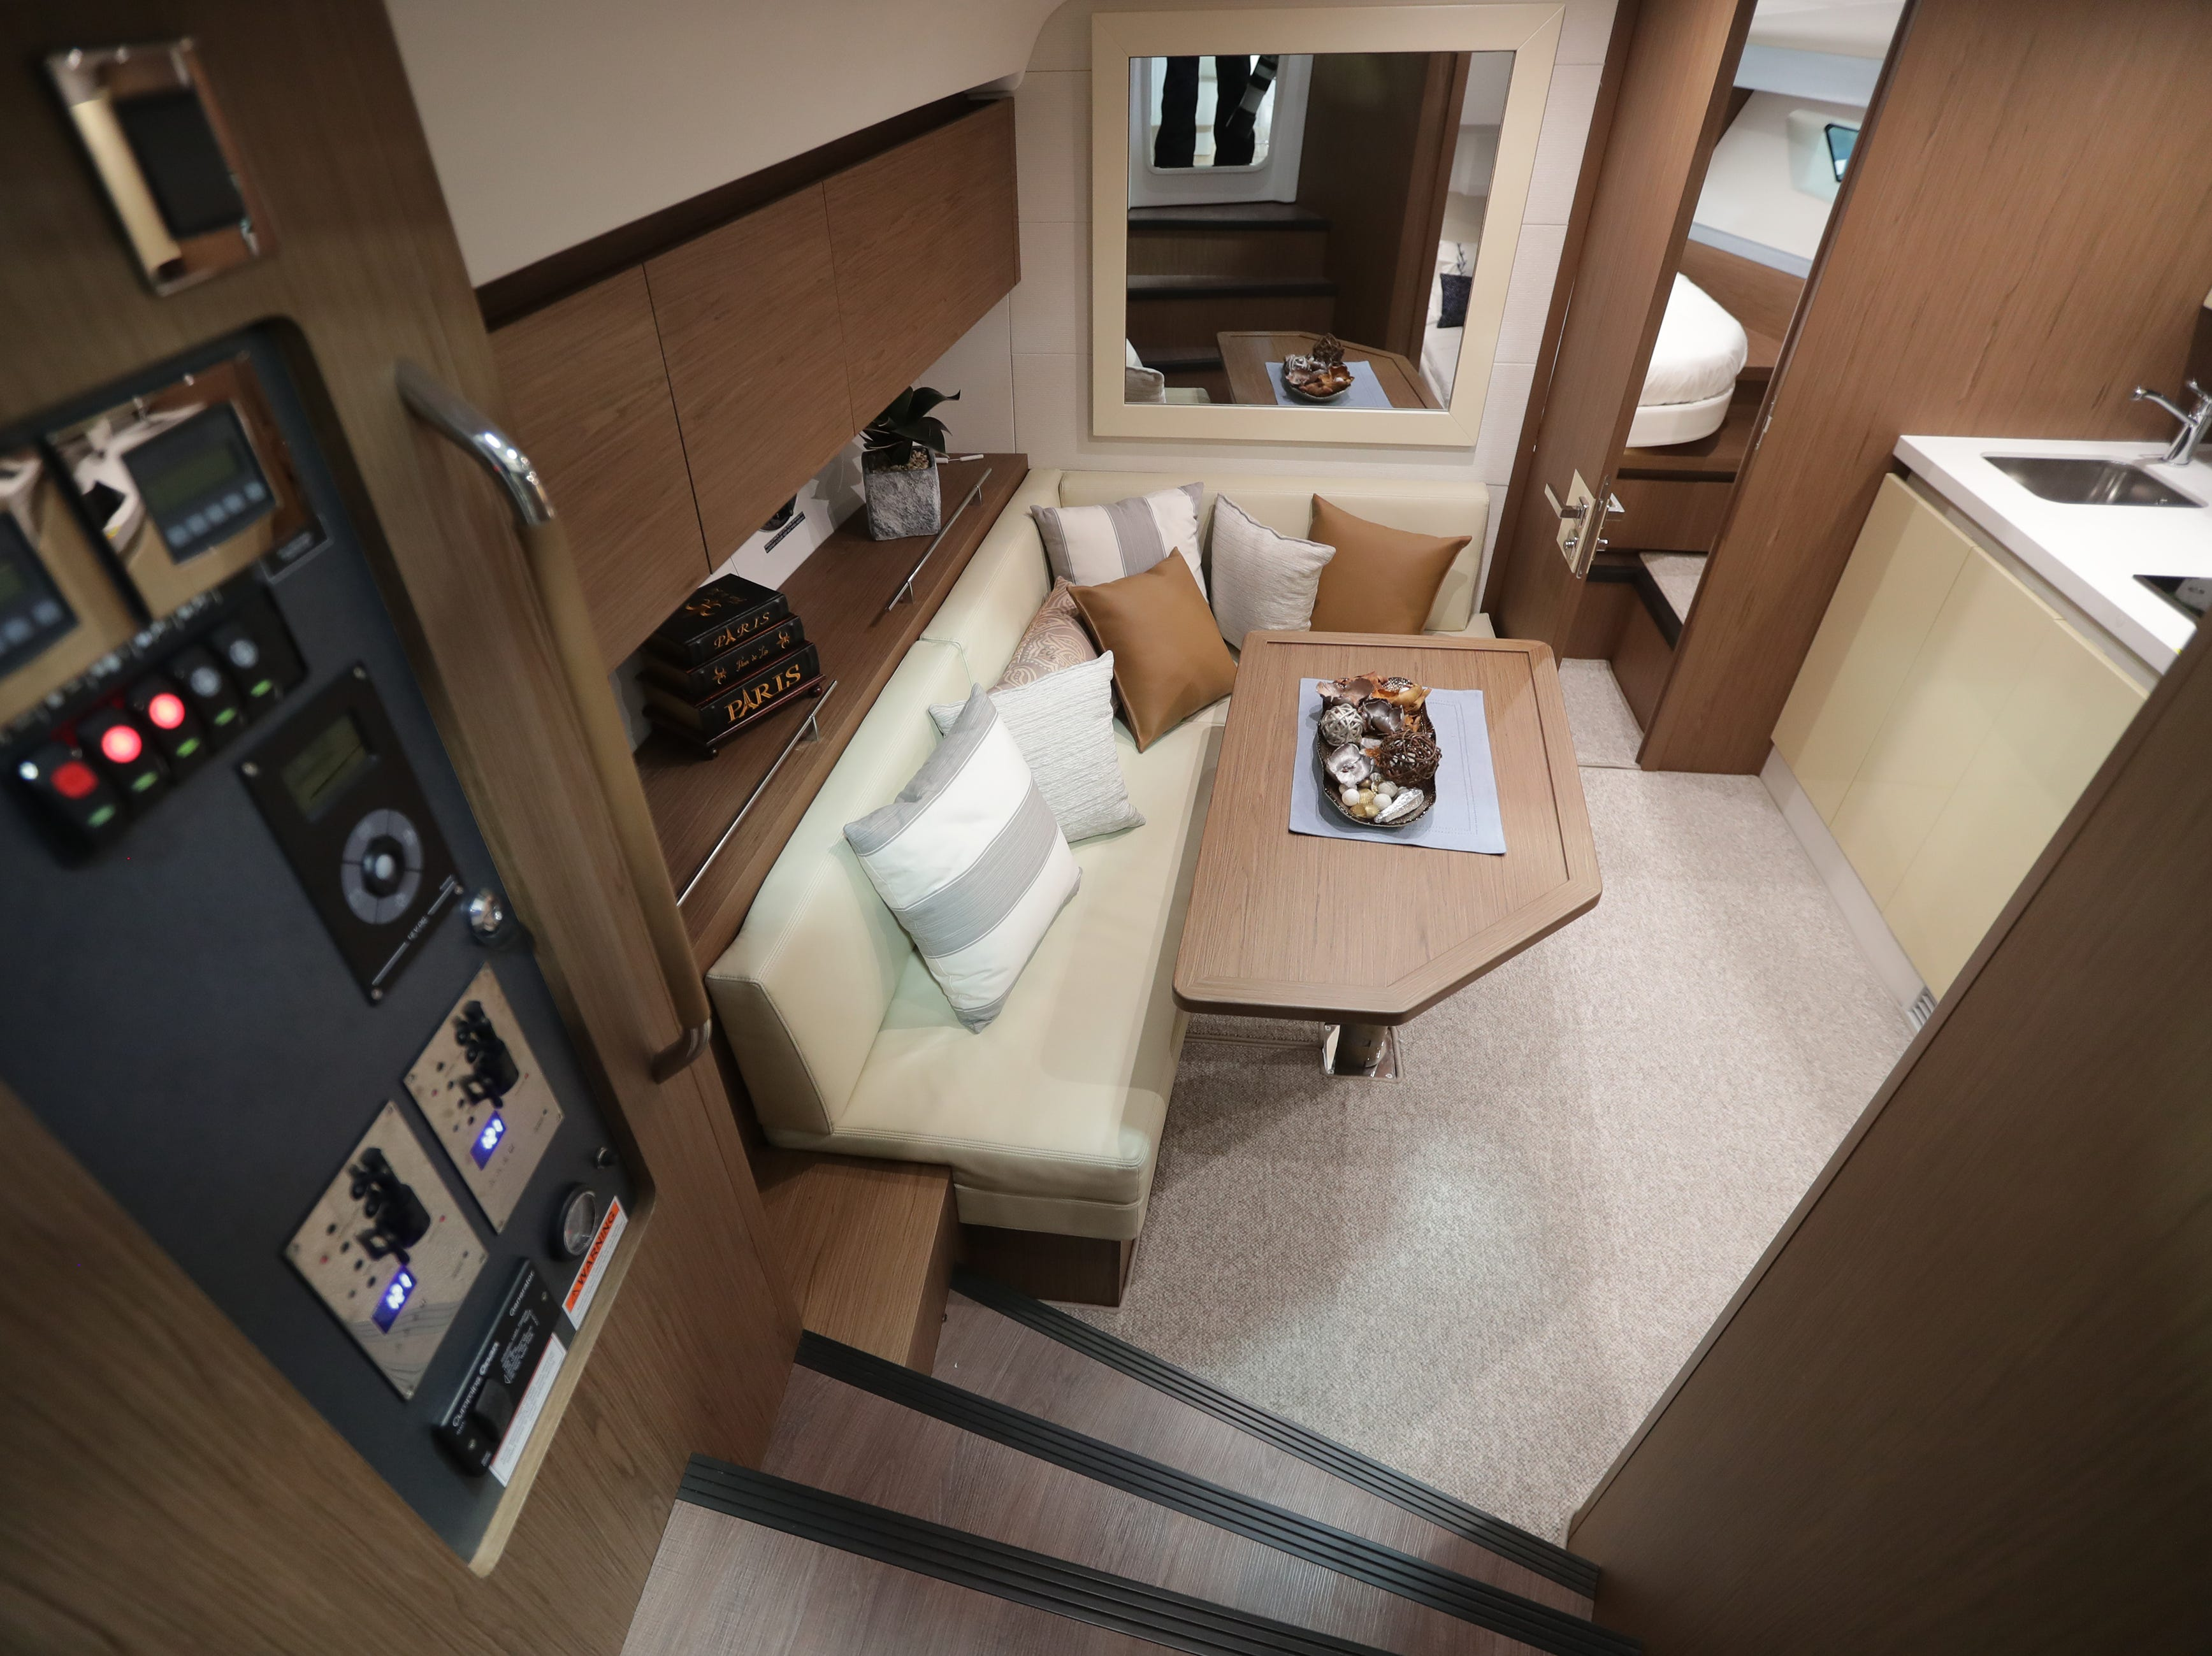 The lower interior seating area of a 2019 40-foot Beneteau  yacht, which lists for $500,000.